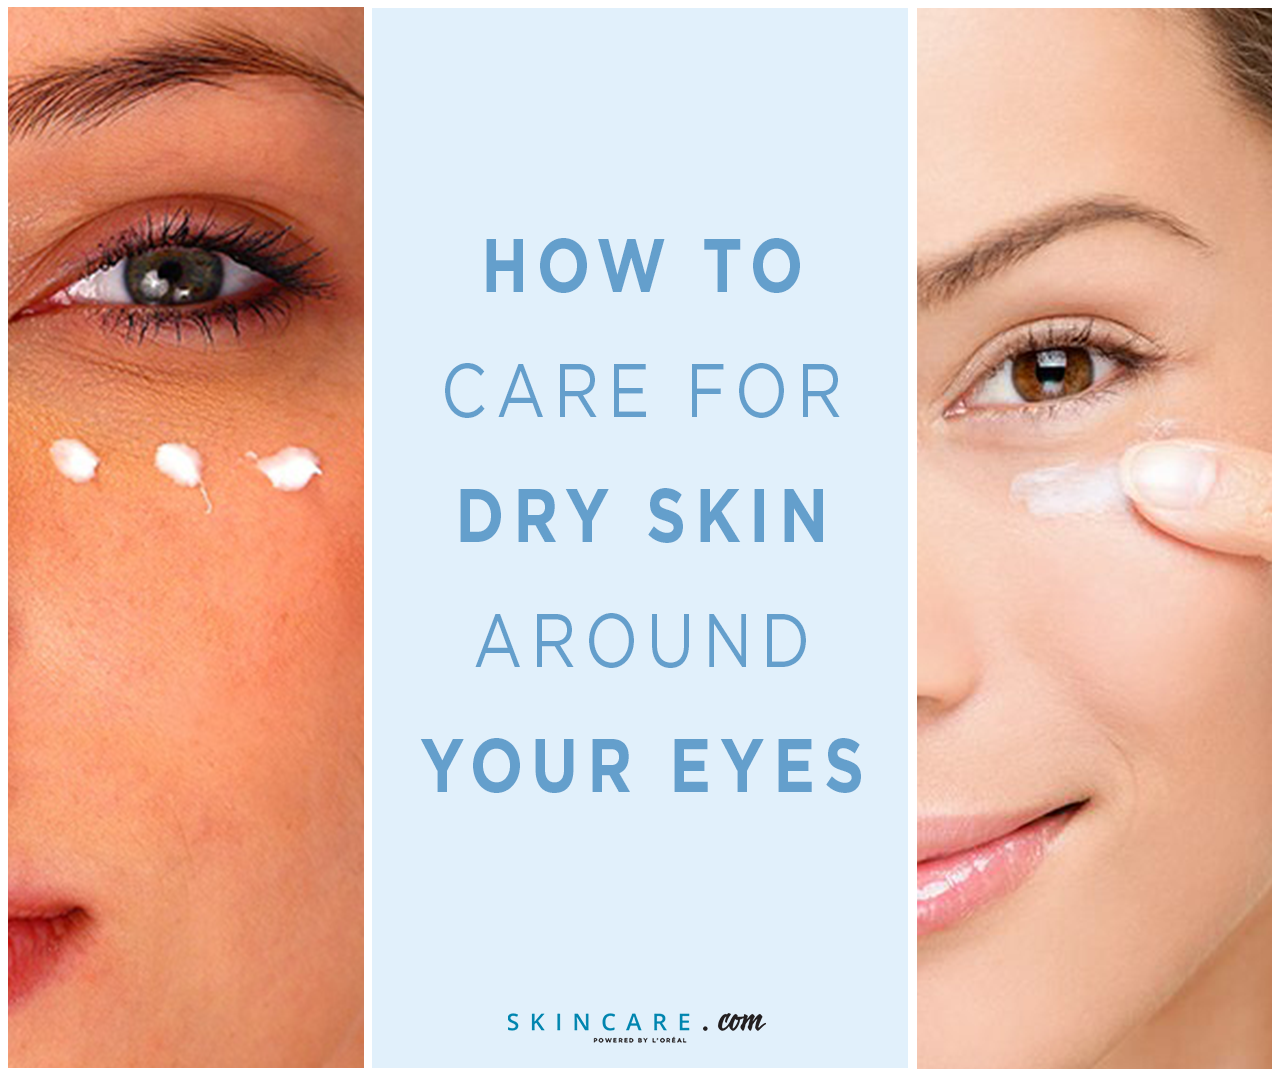 Dry Skin On Your Eyelids Here S What To Do Skincare Com By L Oreal Dry Skin Around Eyes Skin Care Treating Dry Skin